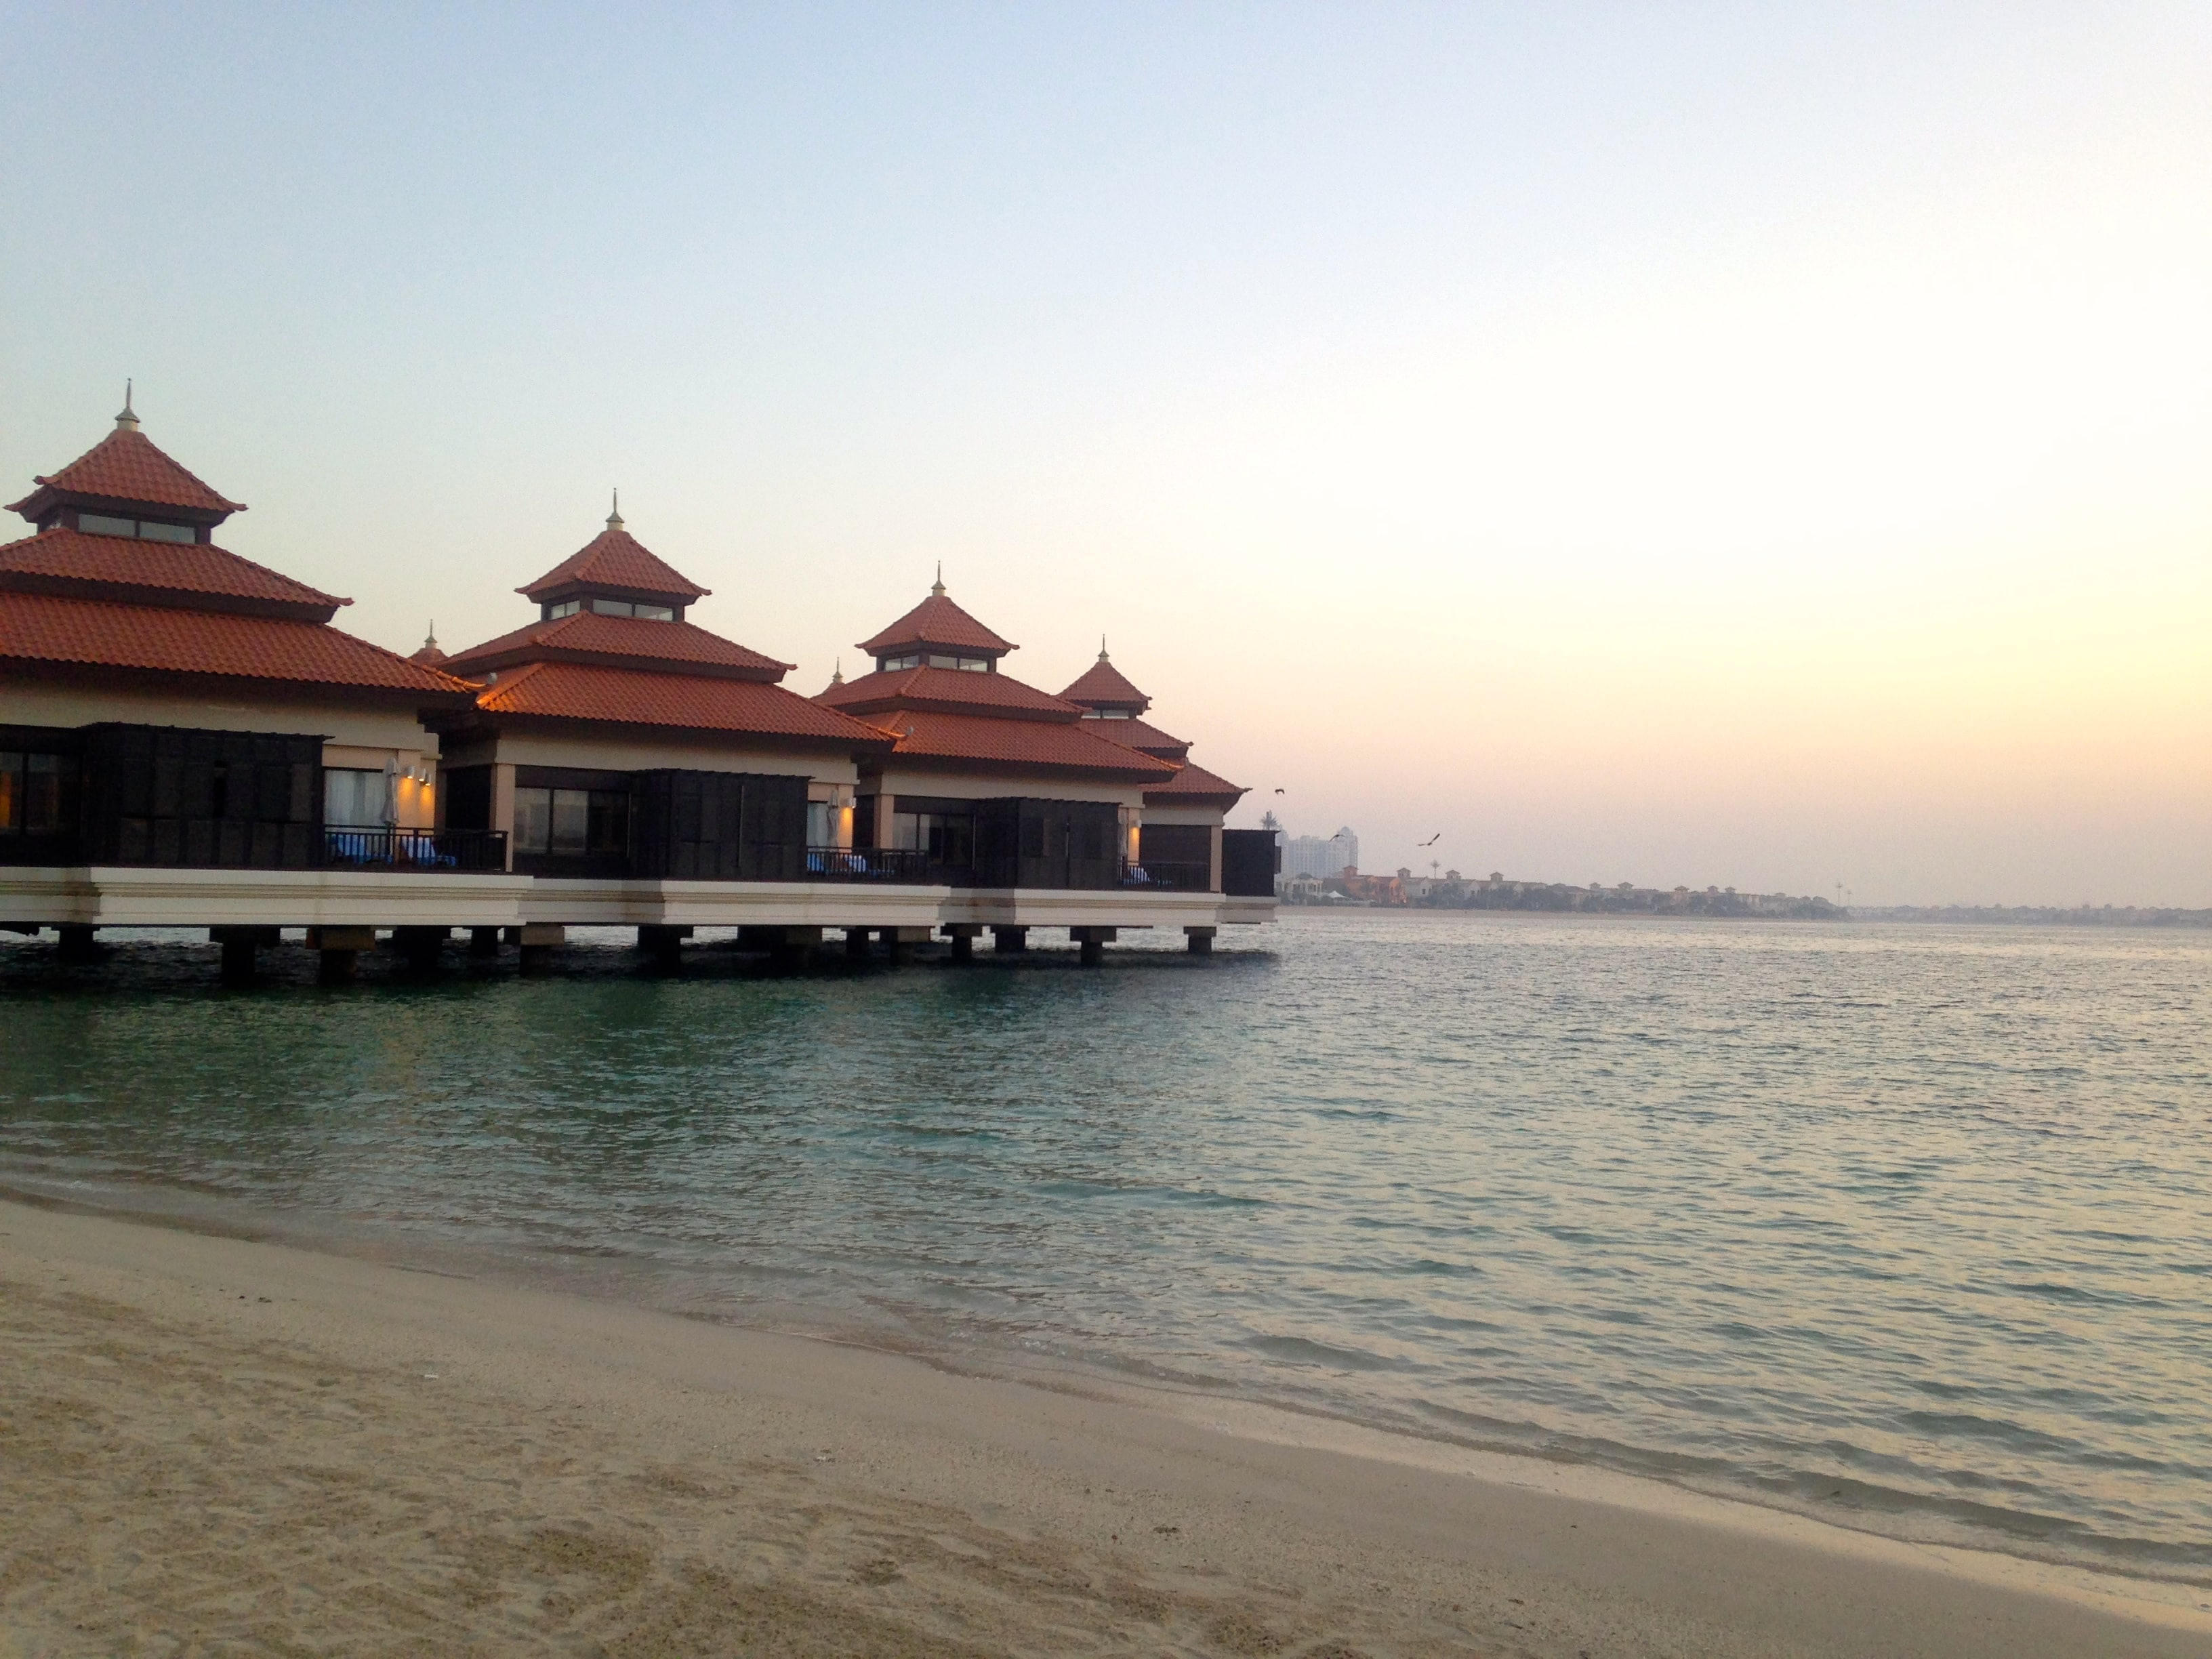 Anantara The Palm Dubai Resort